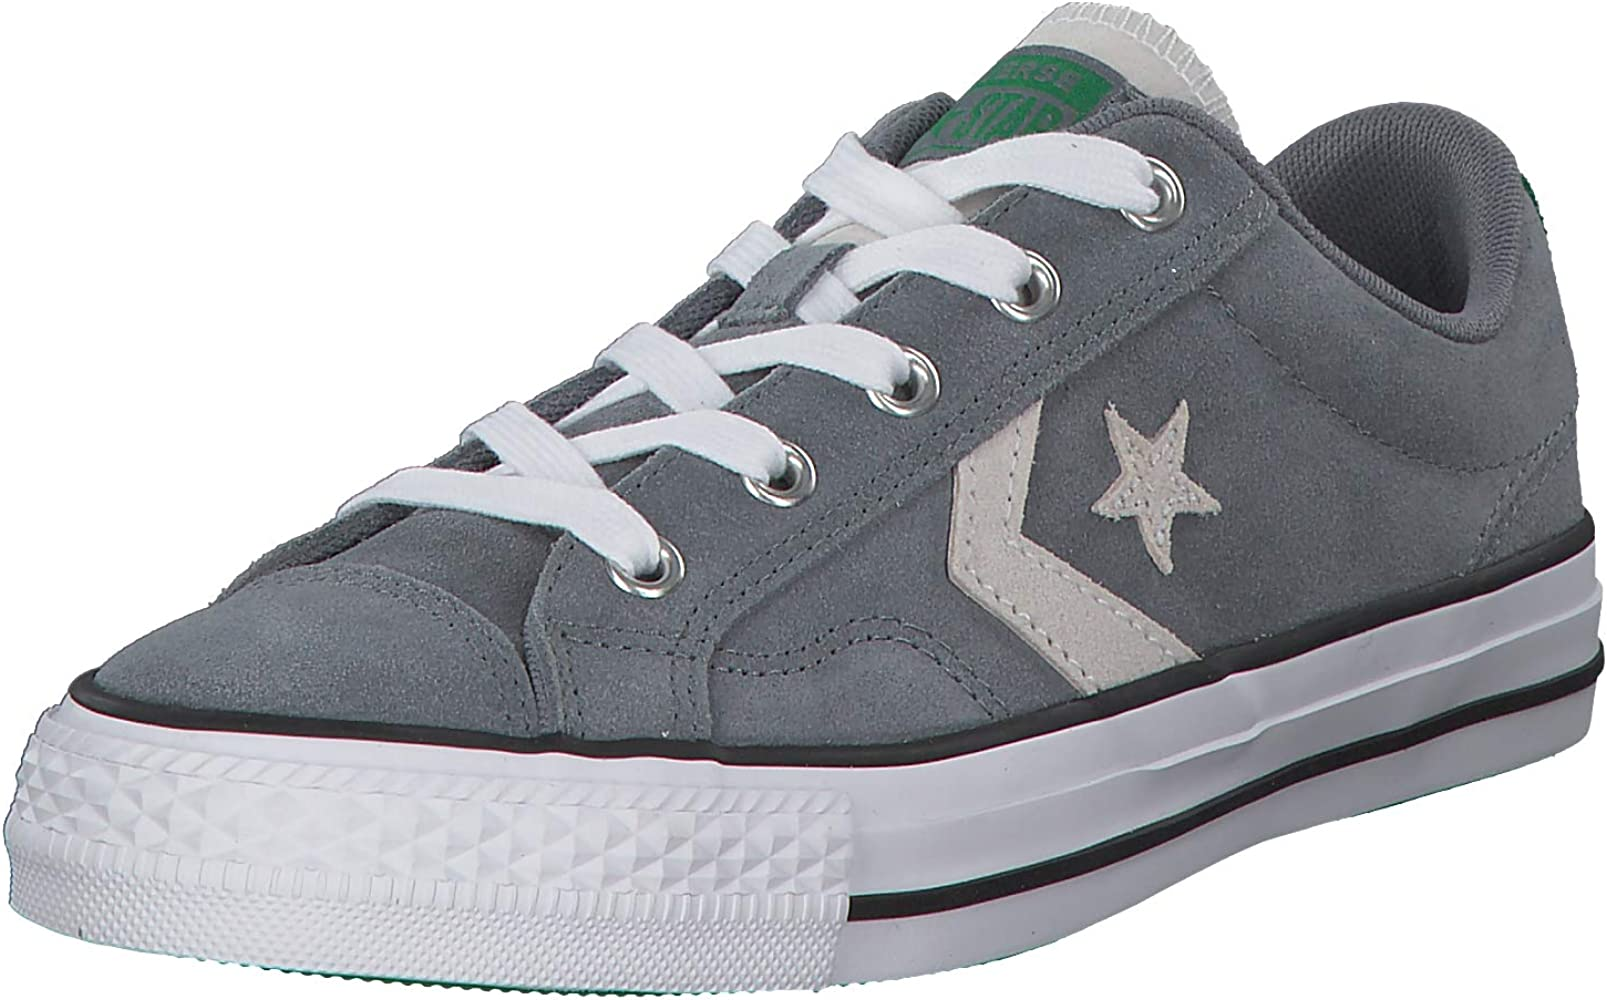 Chaussures type converse Lévi's taille 43